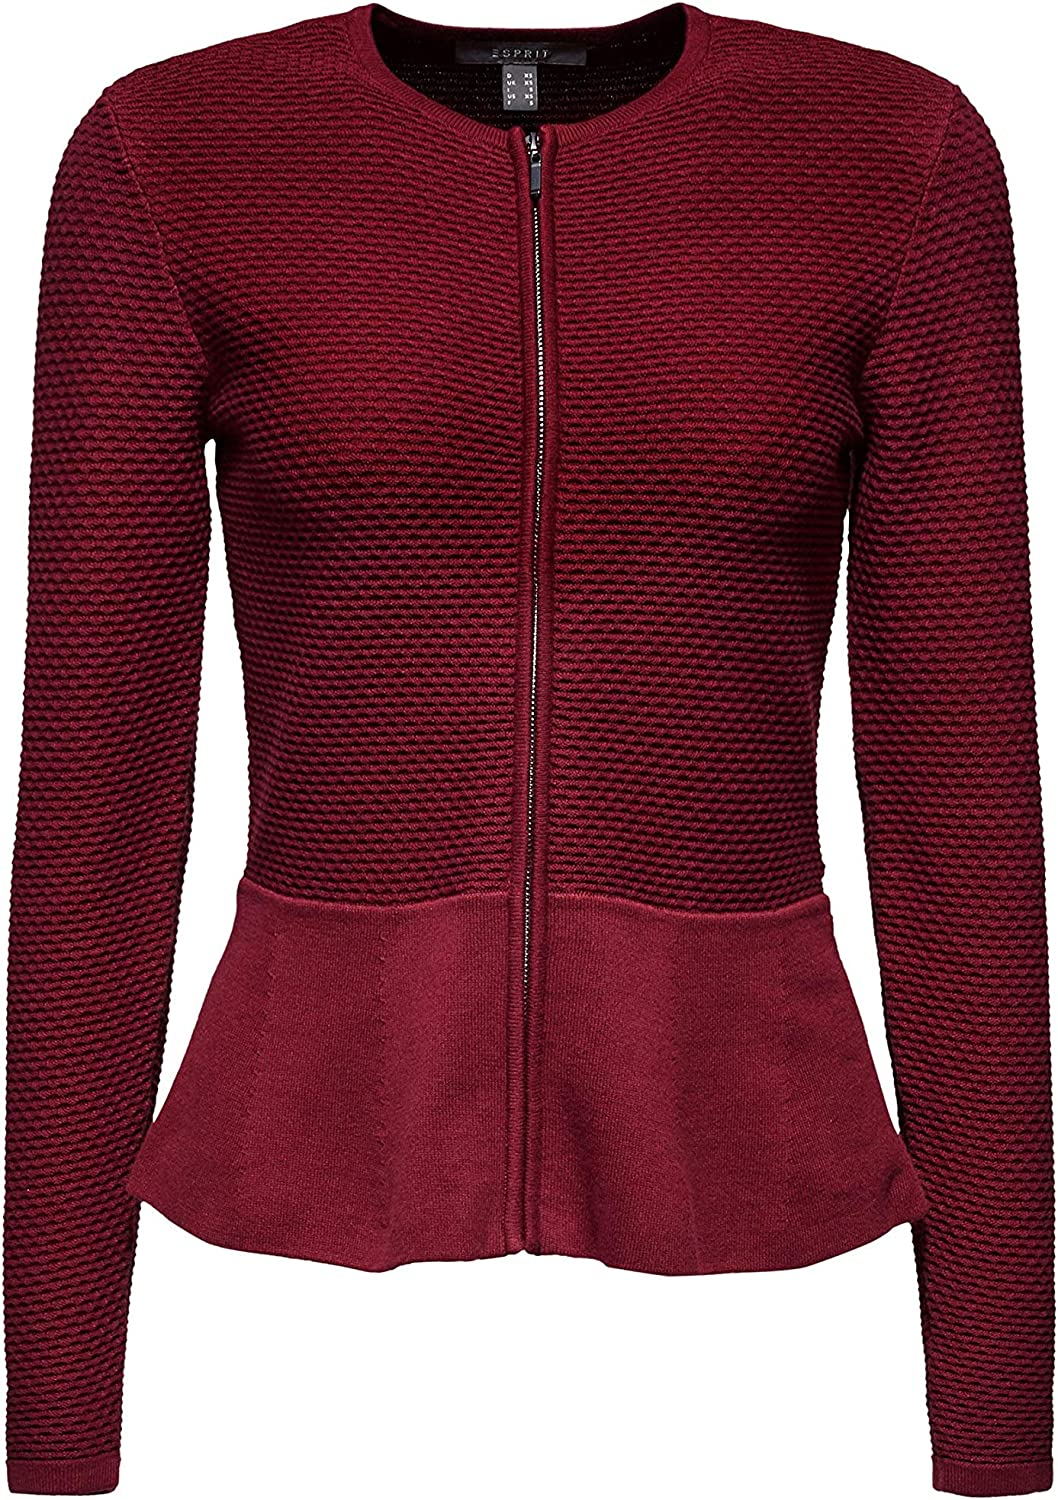 ESPRIT Collection Damen Strickjacke Rot (Garnet Red 620)